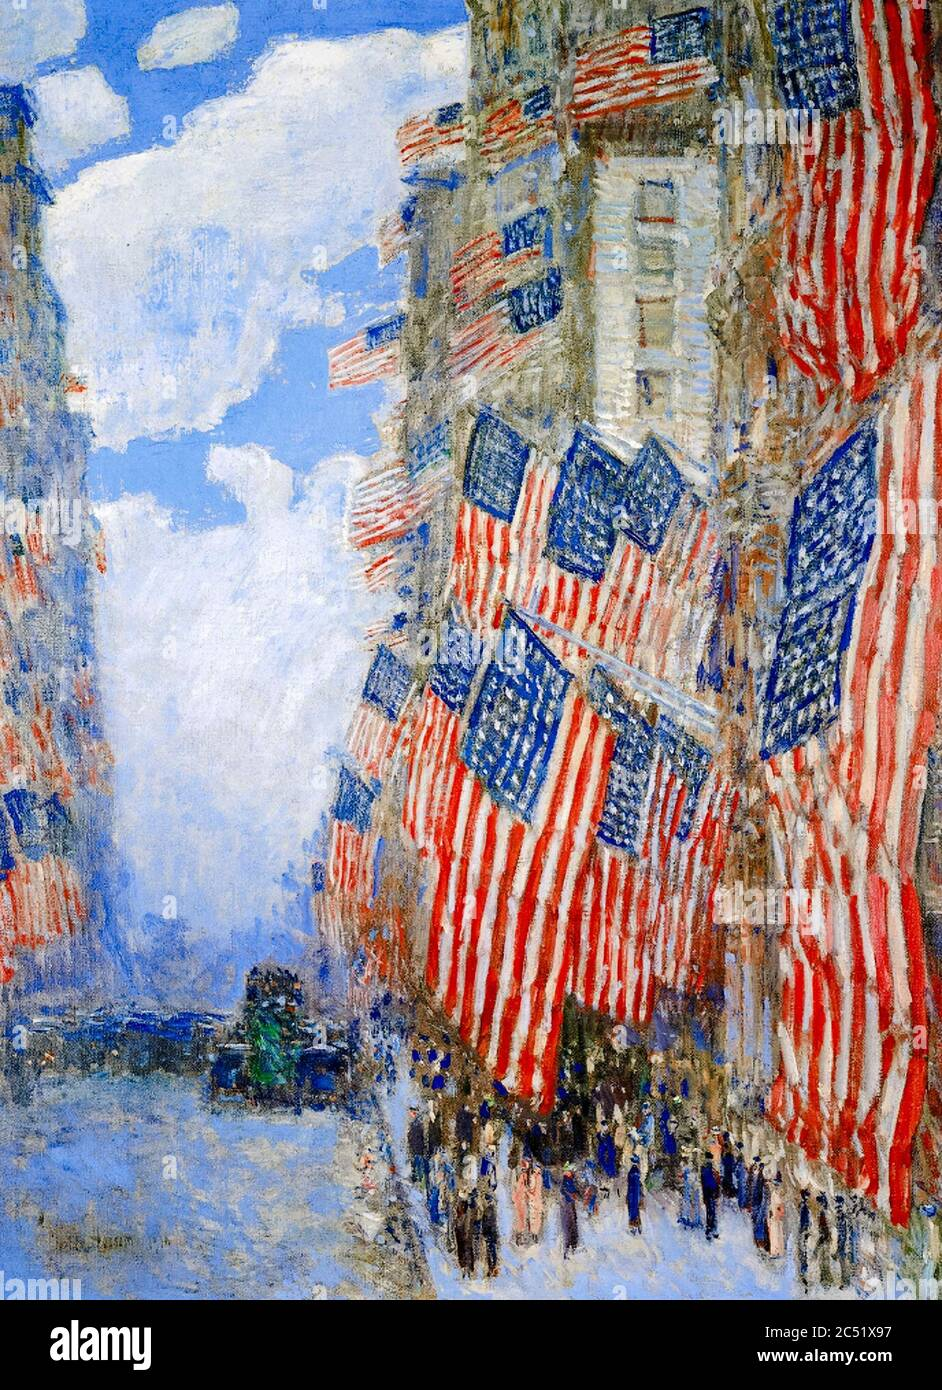 Childe Hassam, The Fourth of July, 1916, (The Greatest Display of the American Flag Ever Seen in New York, Climax of the Preparedness Parade in May), painting, 1916 Stock Photo